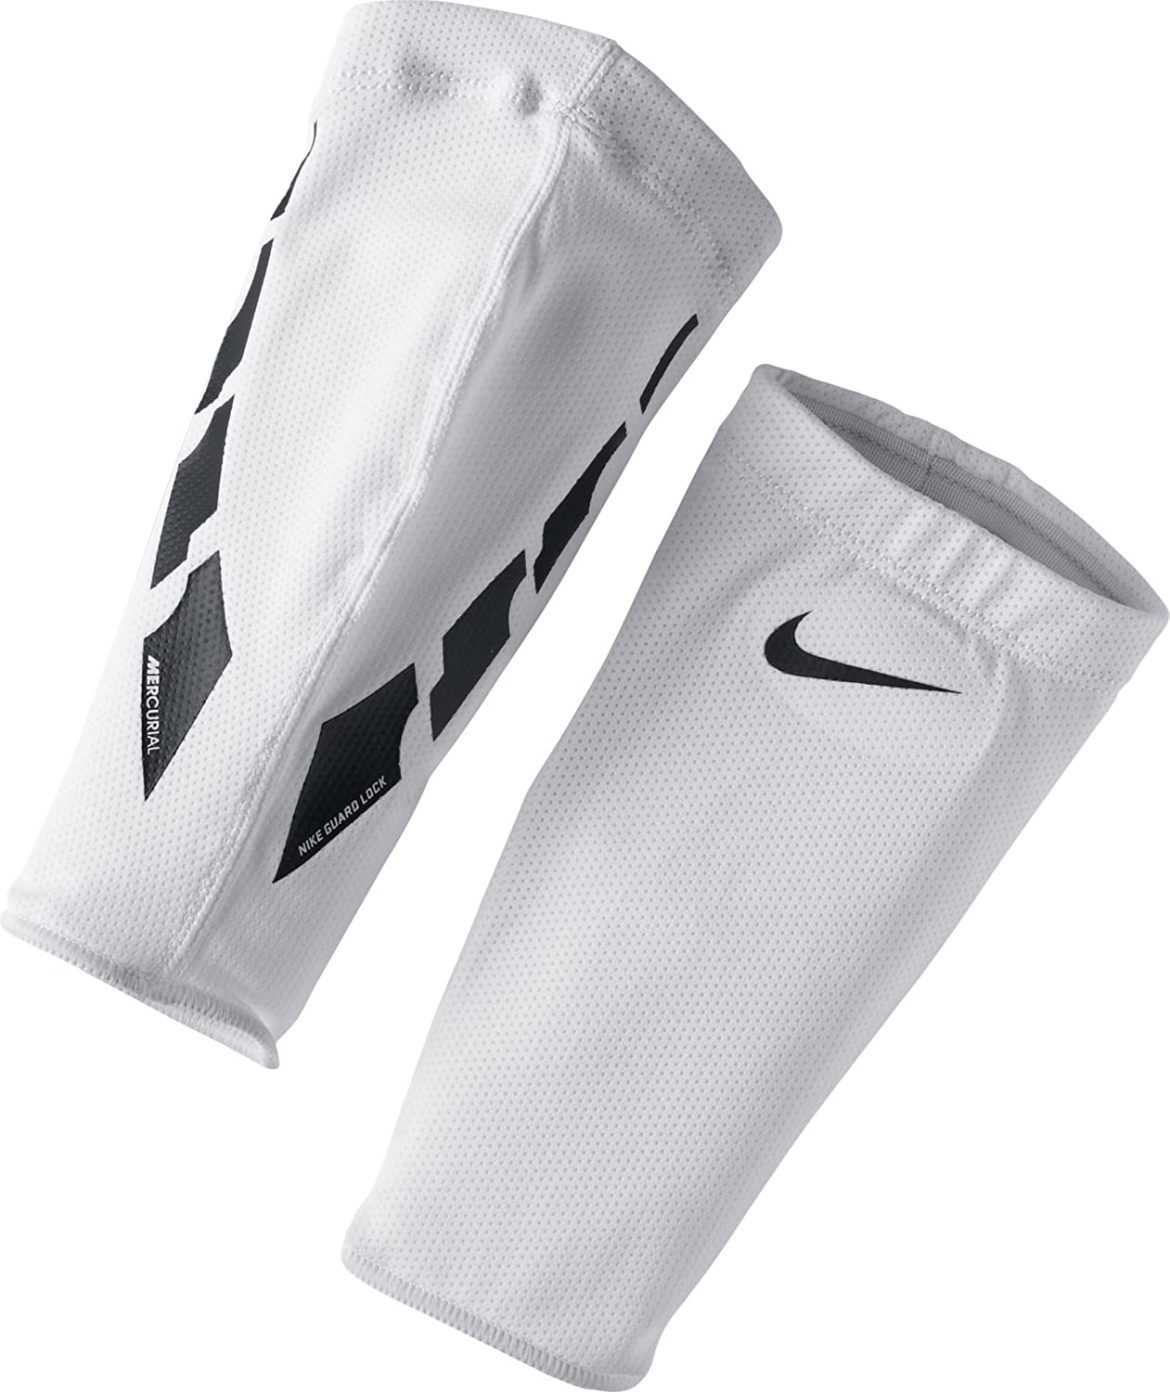 Best Soccer Shin Guards Purchase guide : How to select Soccer Shin Guards